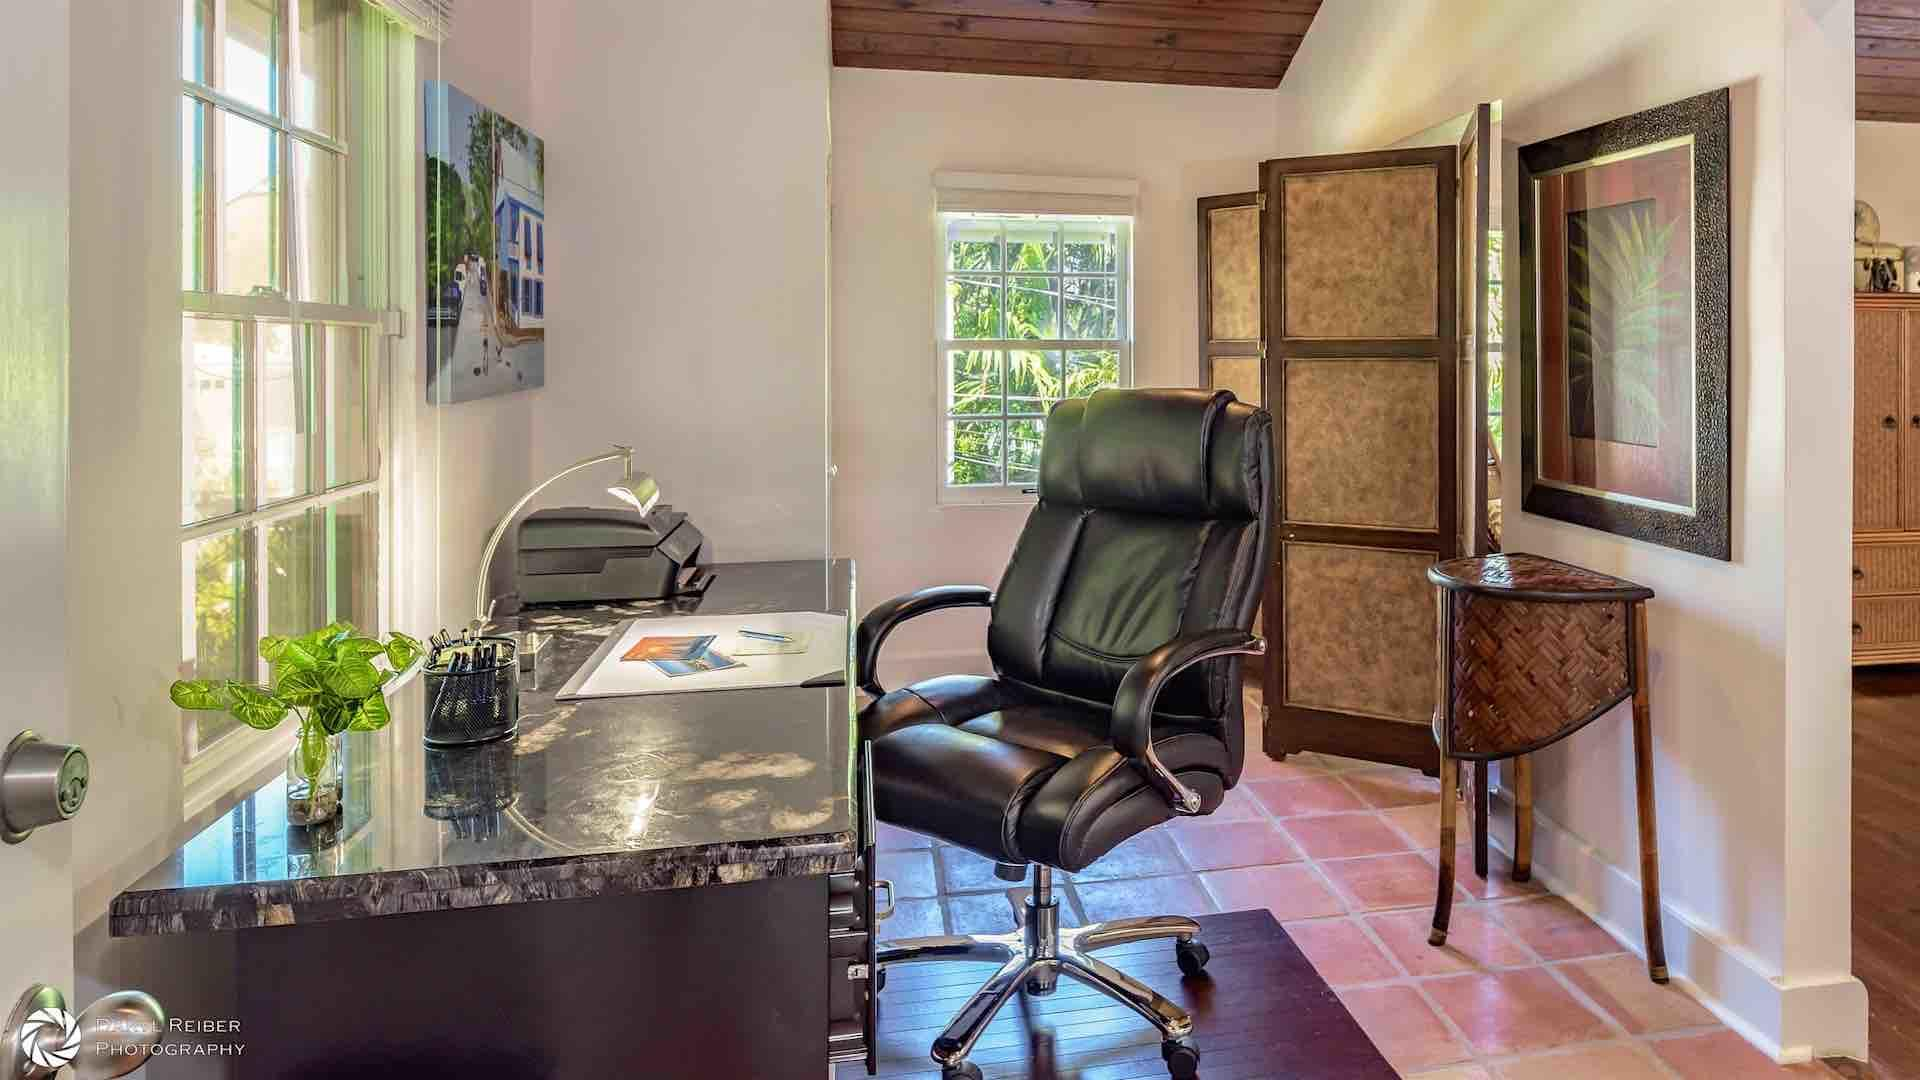 Located in the third bedroom is an Office space with it's own TV...